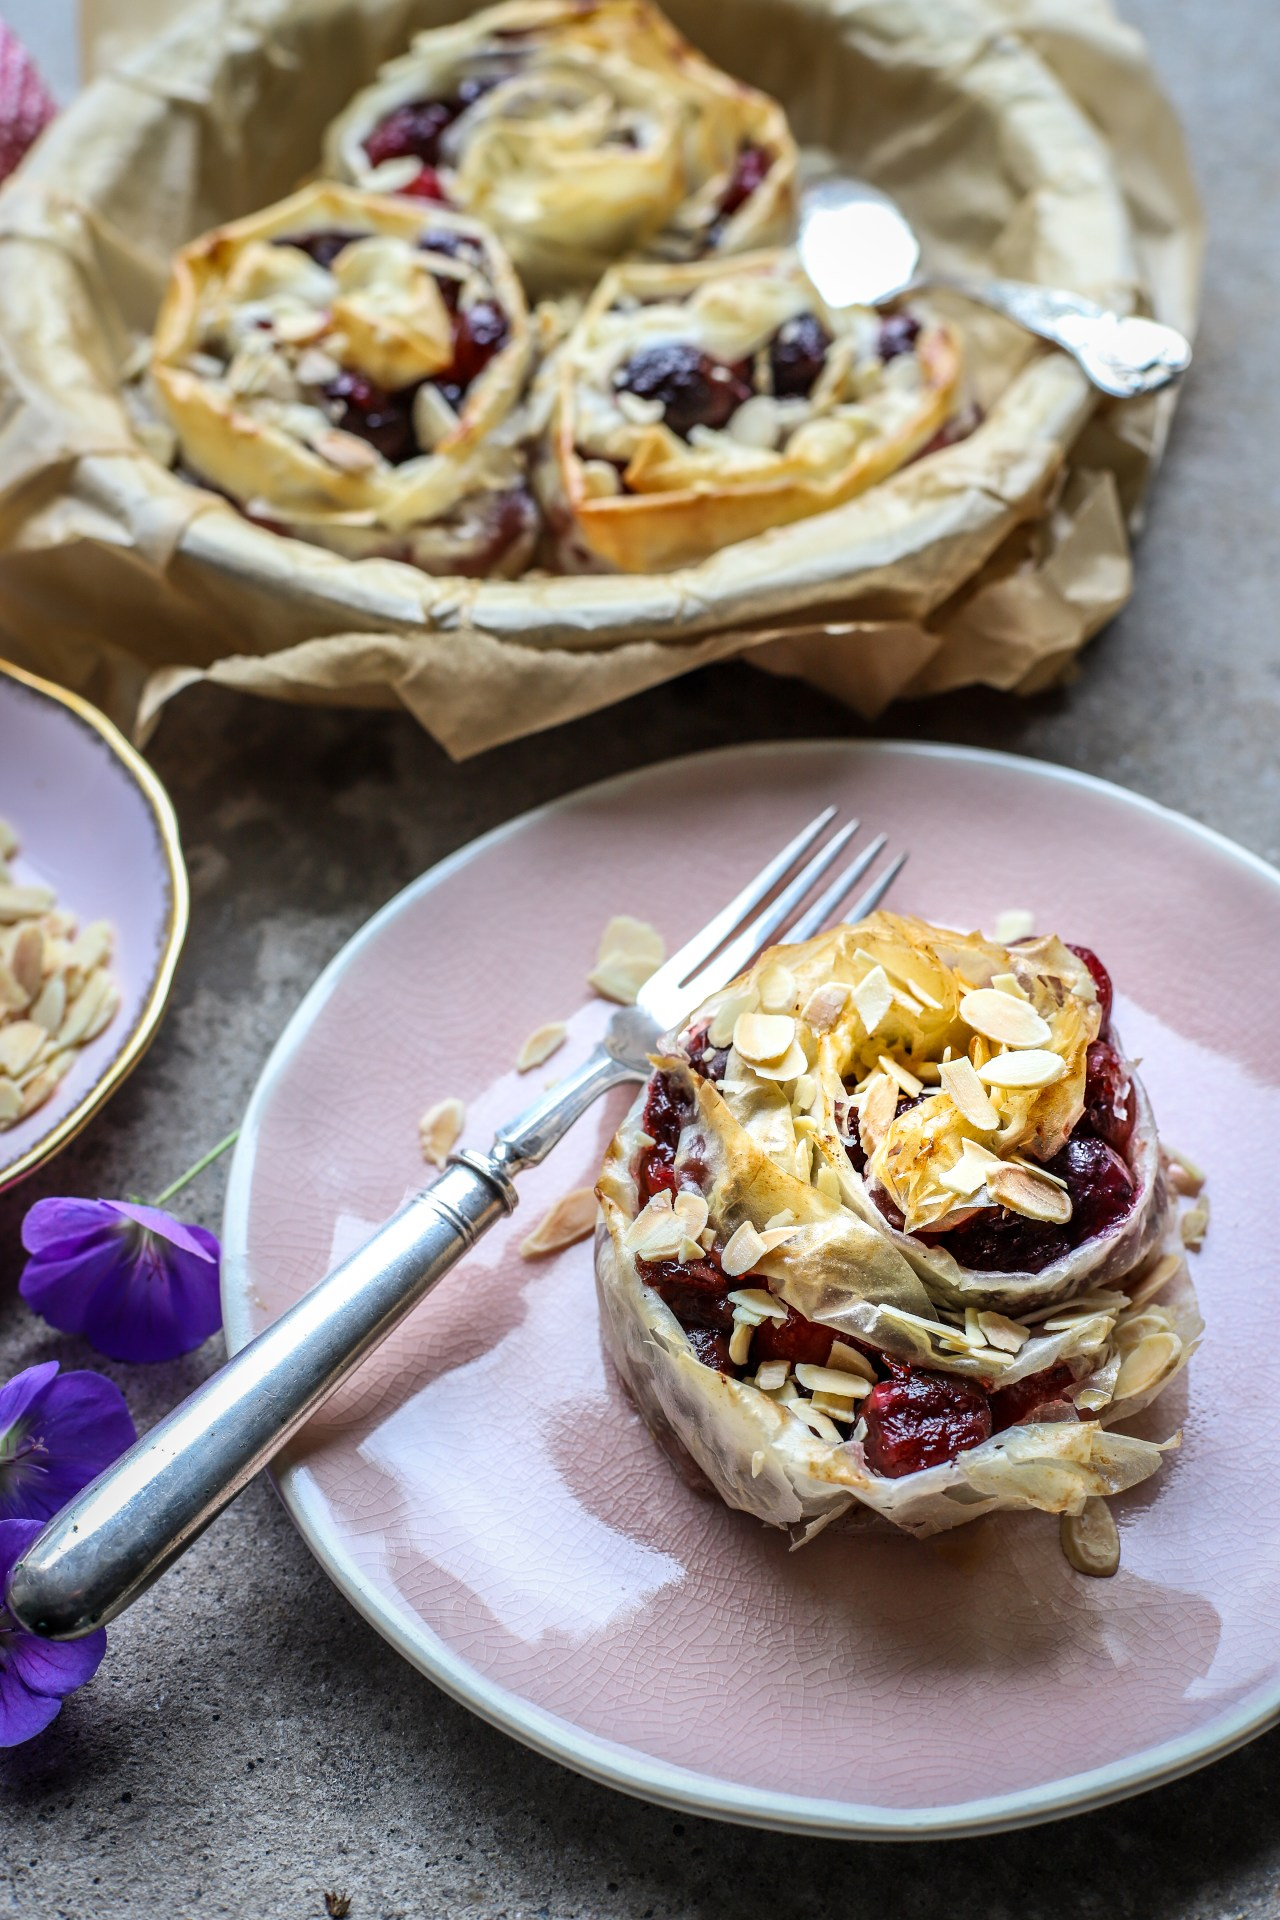 Easy Cherry and Cream Cheese Ruffle Hand Pies - make with a simple #cherry sauce nestled with (#vegan) cream cheese in rosettes of crunchy phyllo pastry. A healthy-ish sweet treat for #dessert.#pies #baking